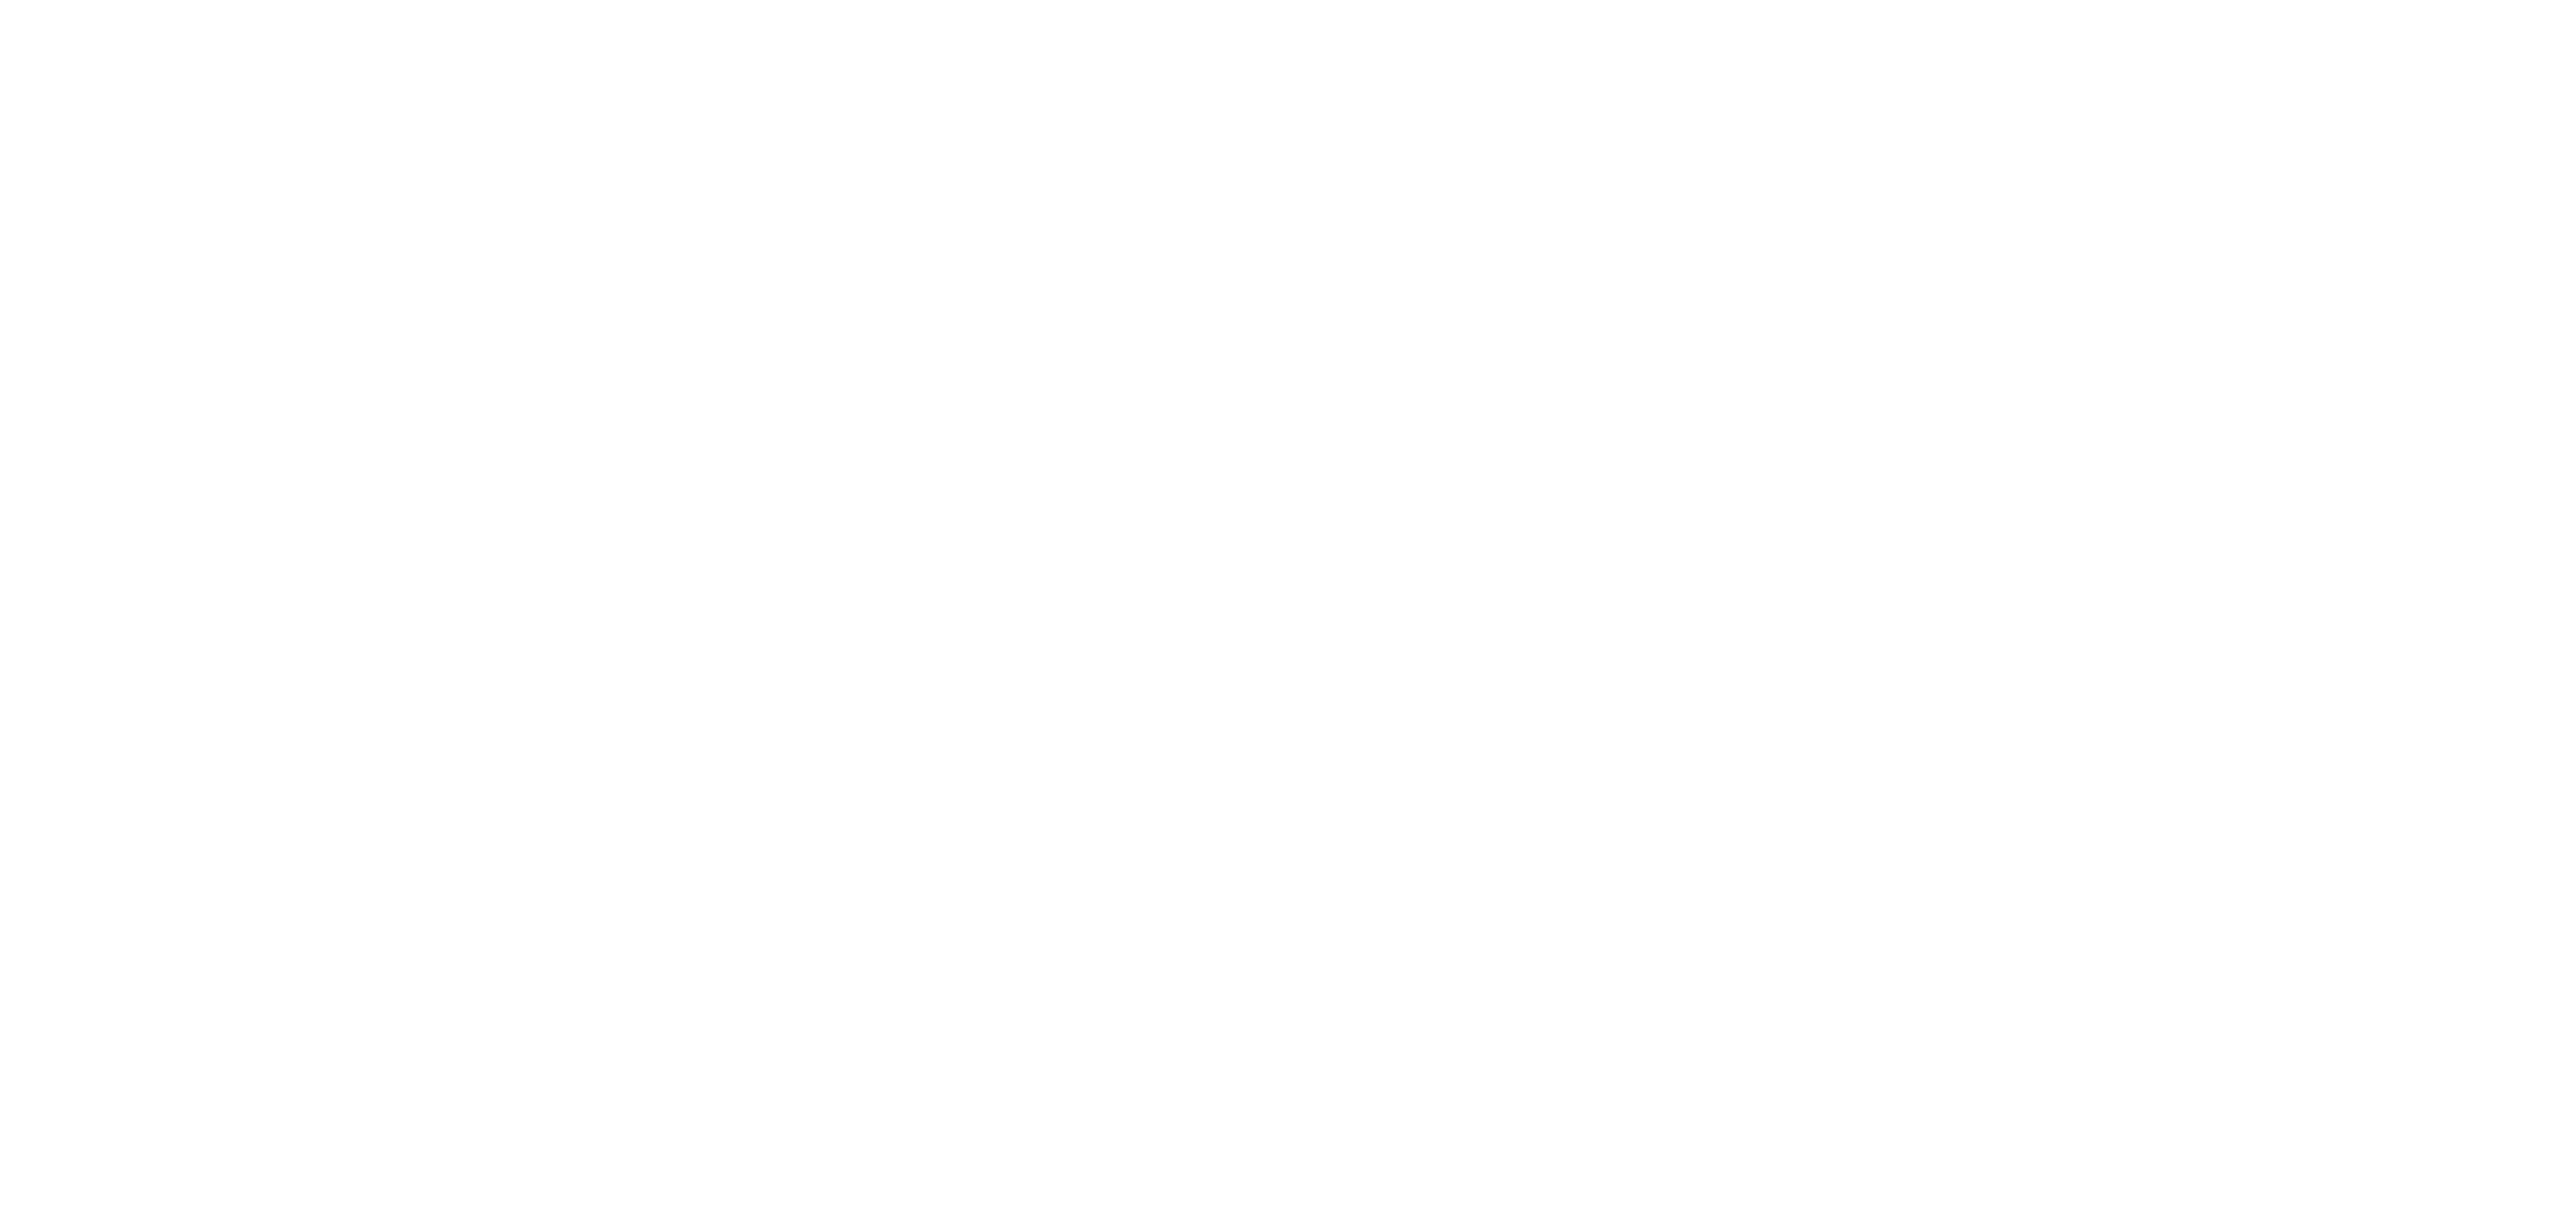 Sycamore Country Club